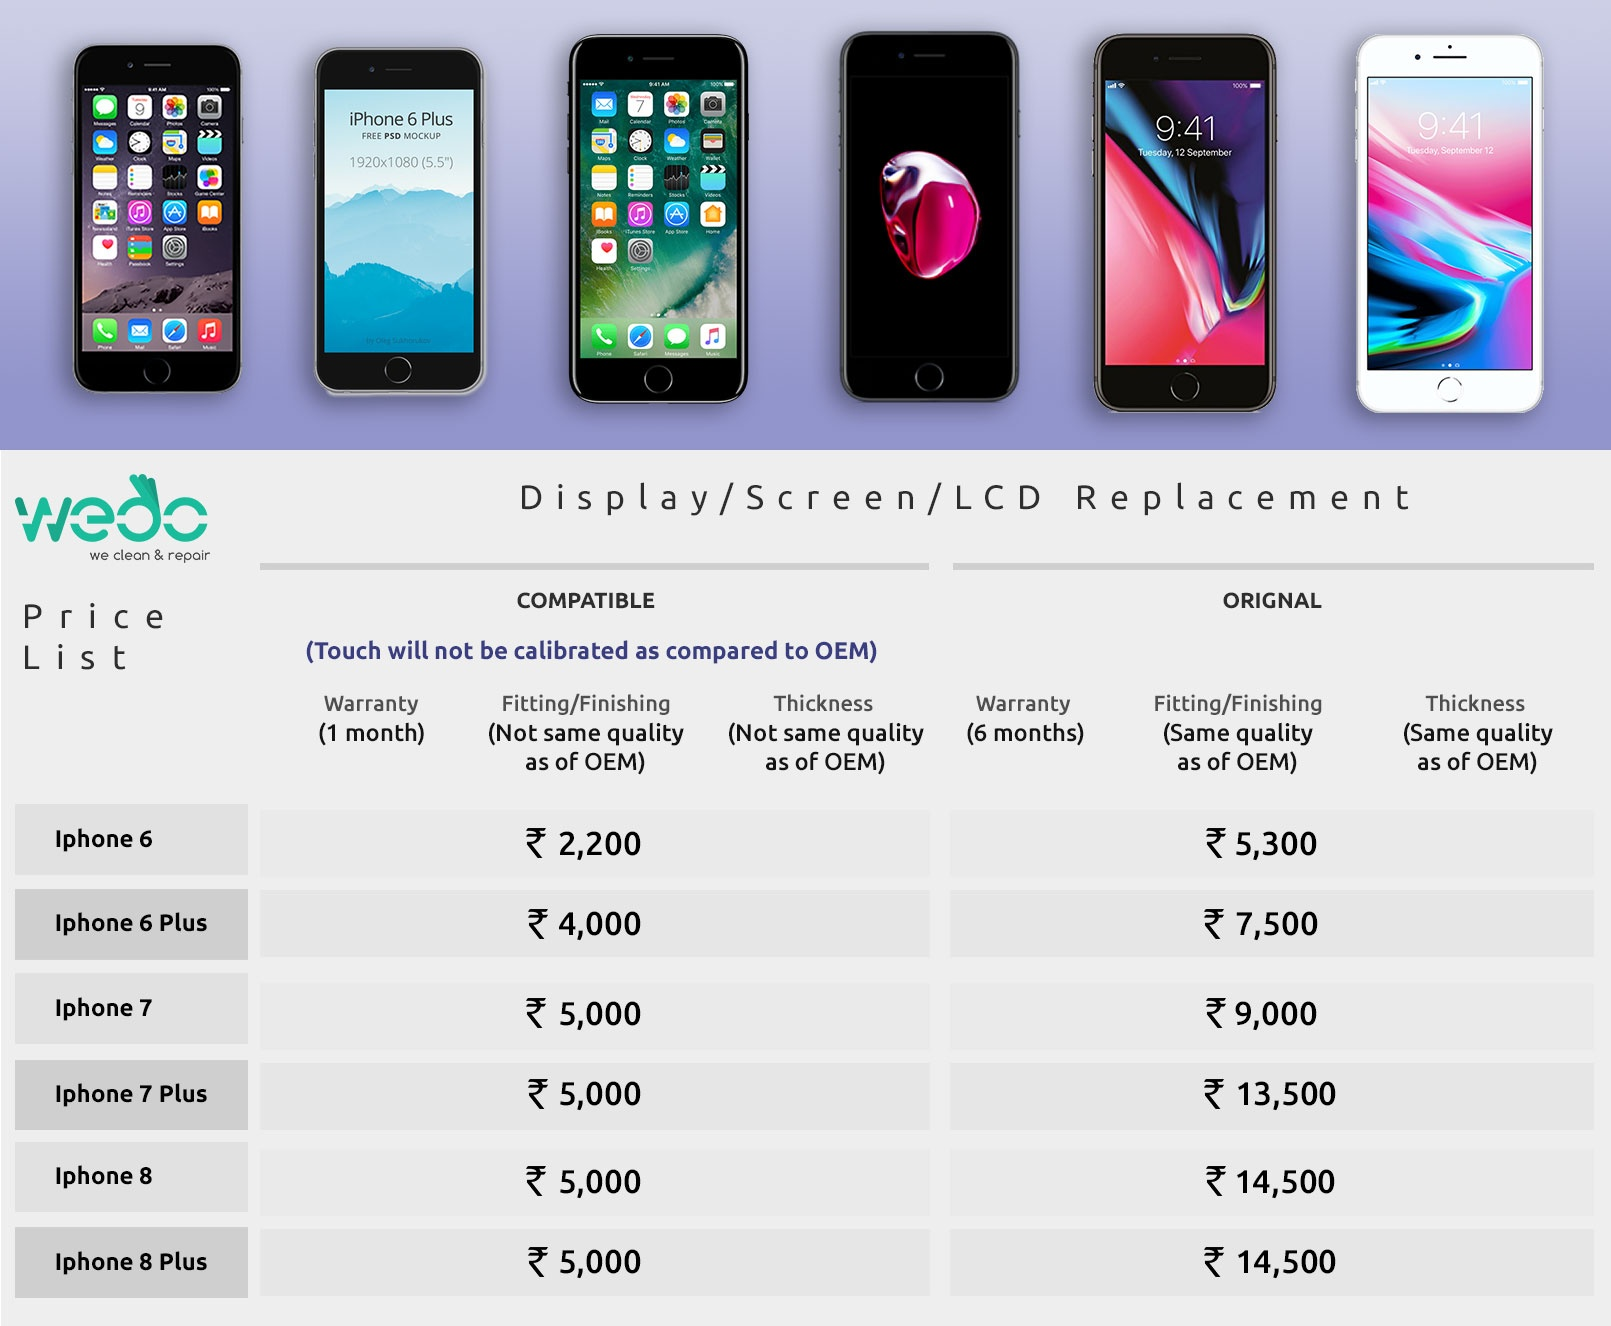 how much does it cost to fix a cracked phone screen in india